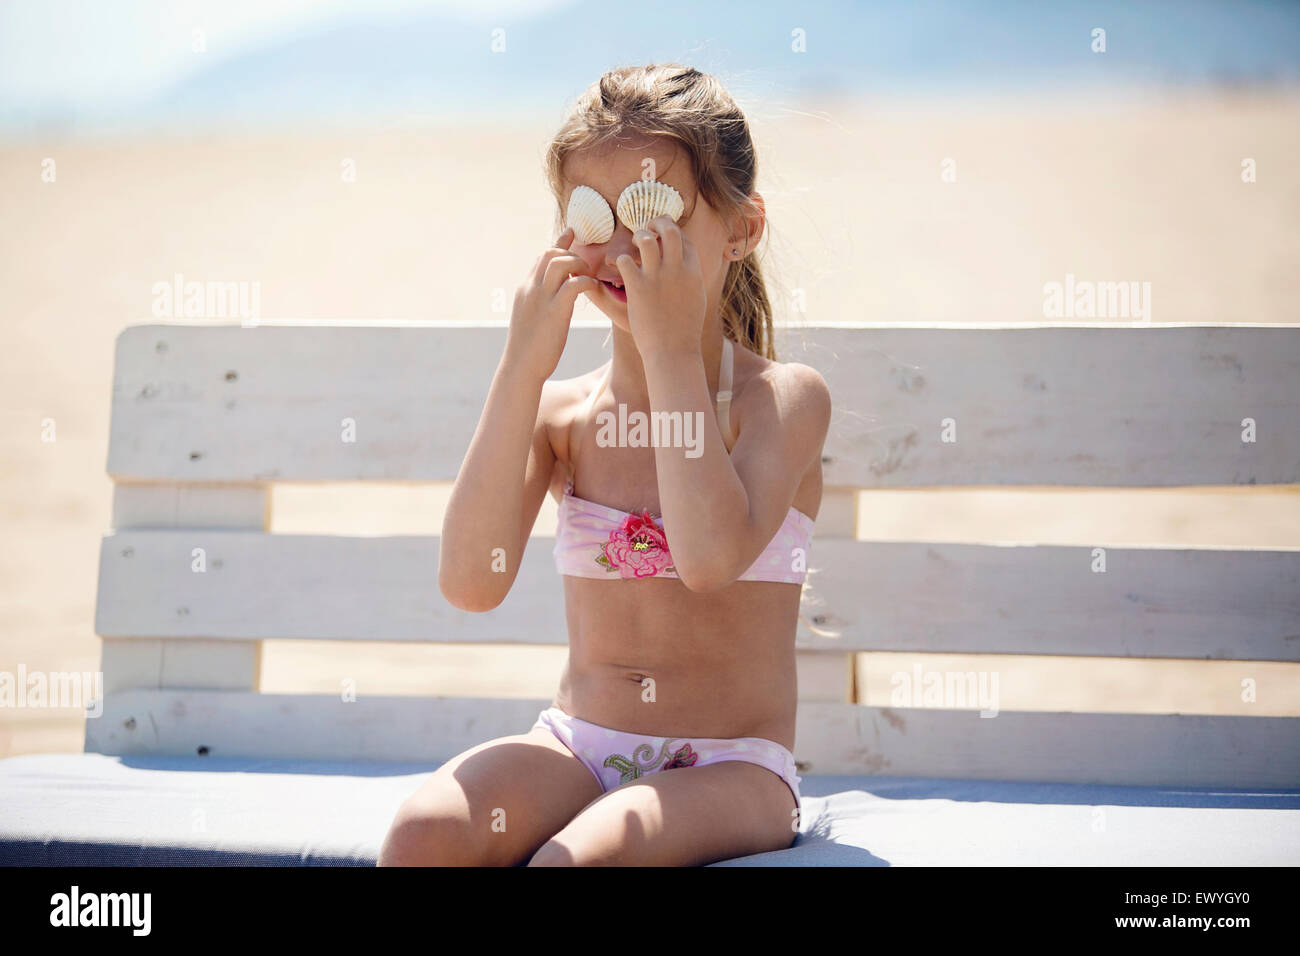 Girl sitting on a bench at the beach holding sea shells in front of her eyes - Stock Image